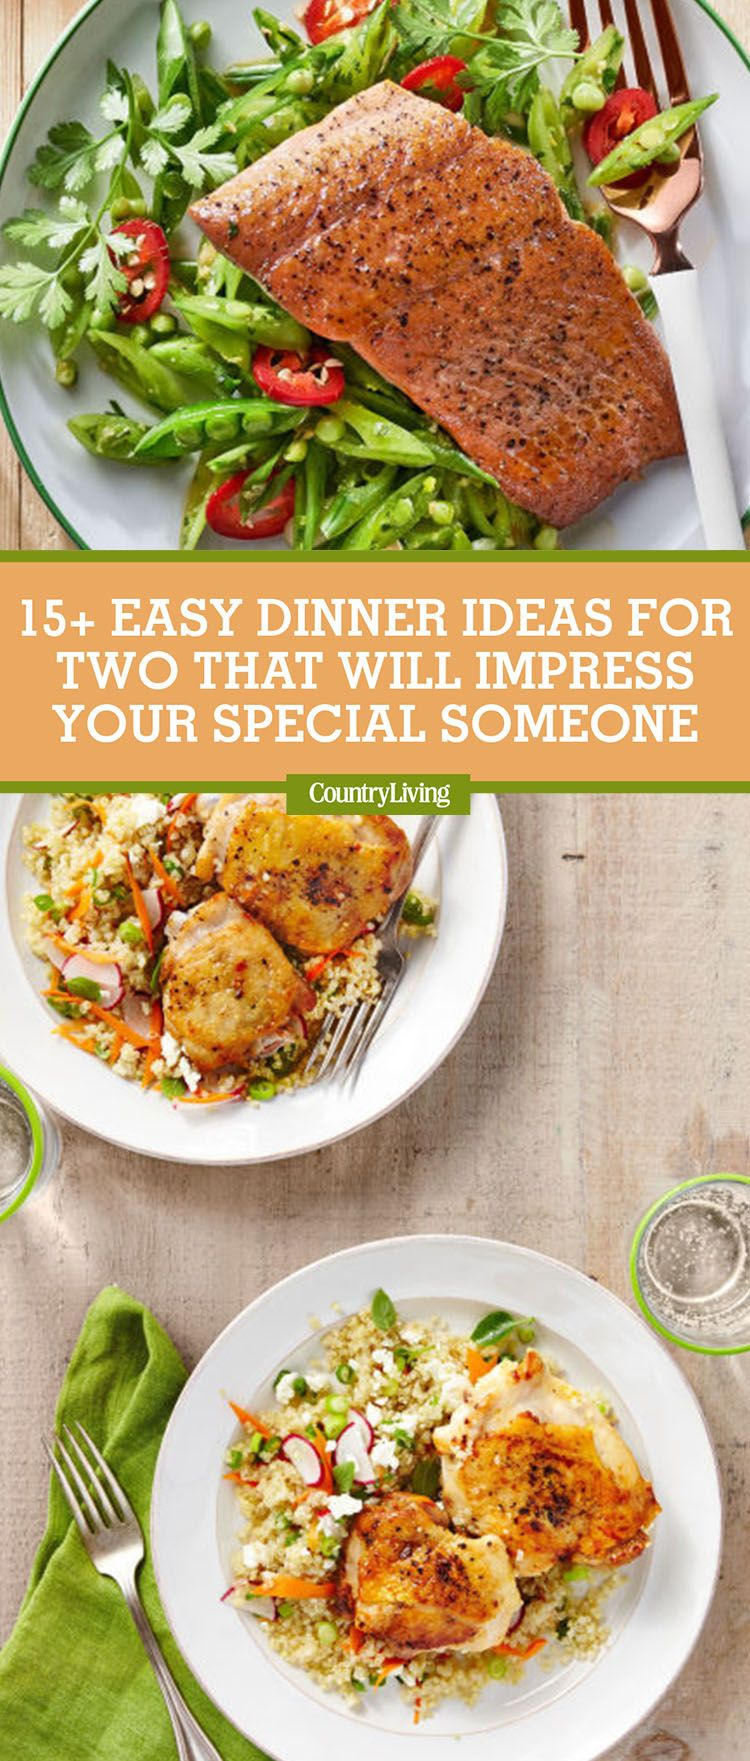 17 easy dinner ideas for two romantic dinner for two recipes forumfinder Images